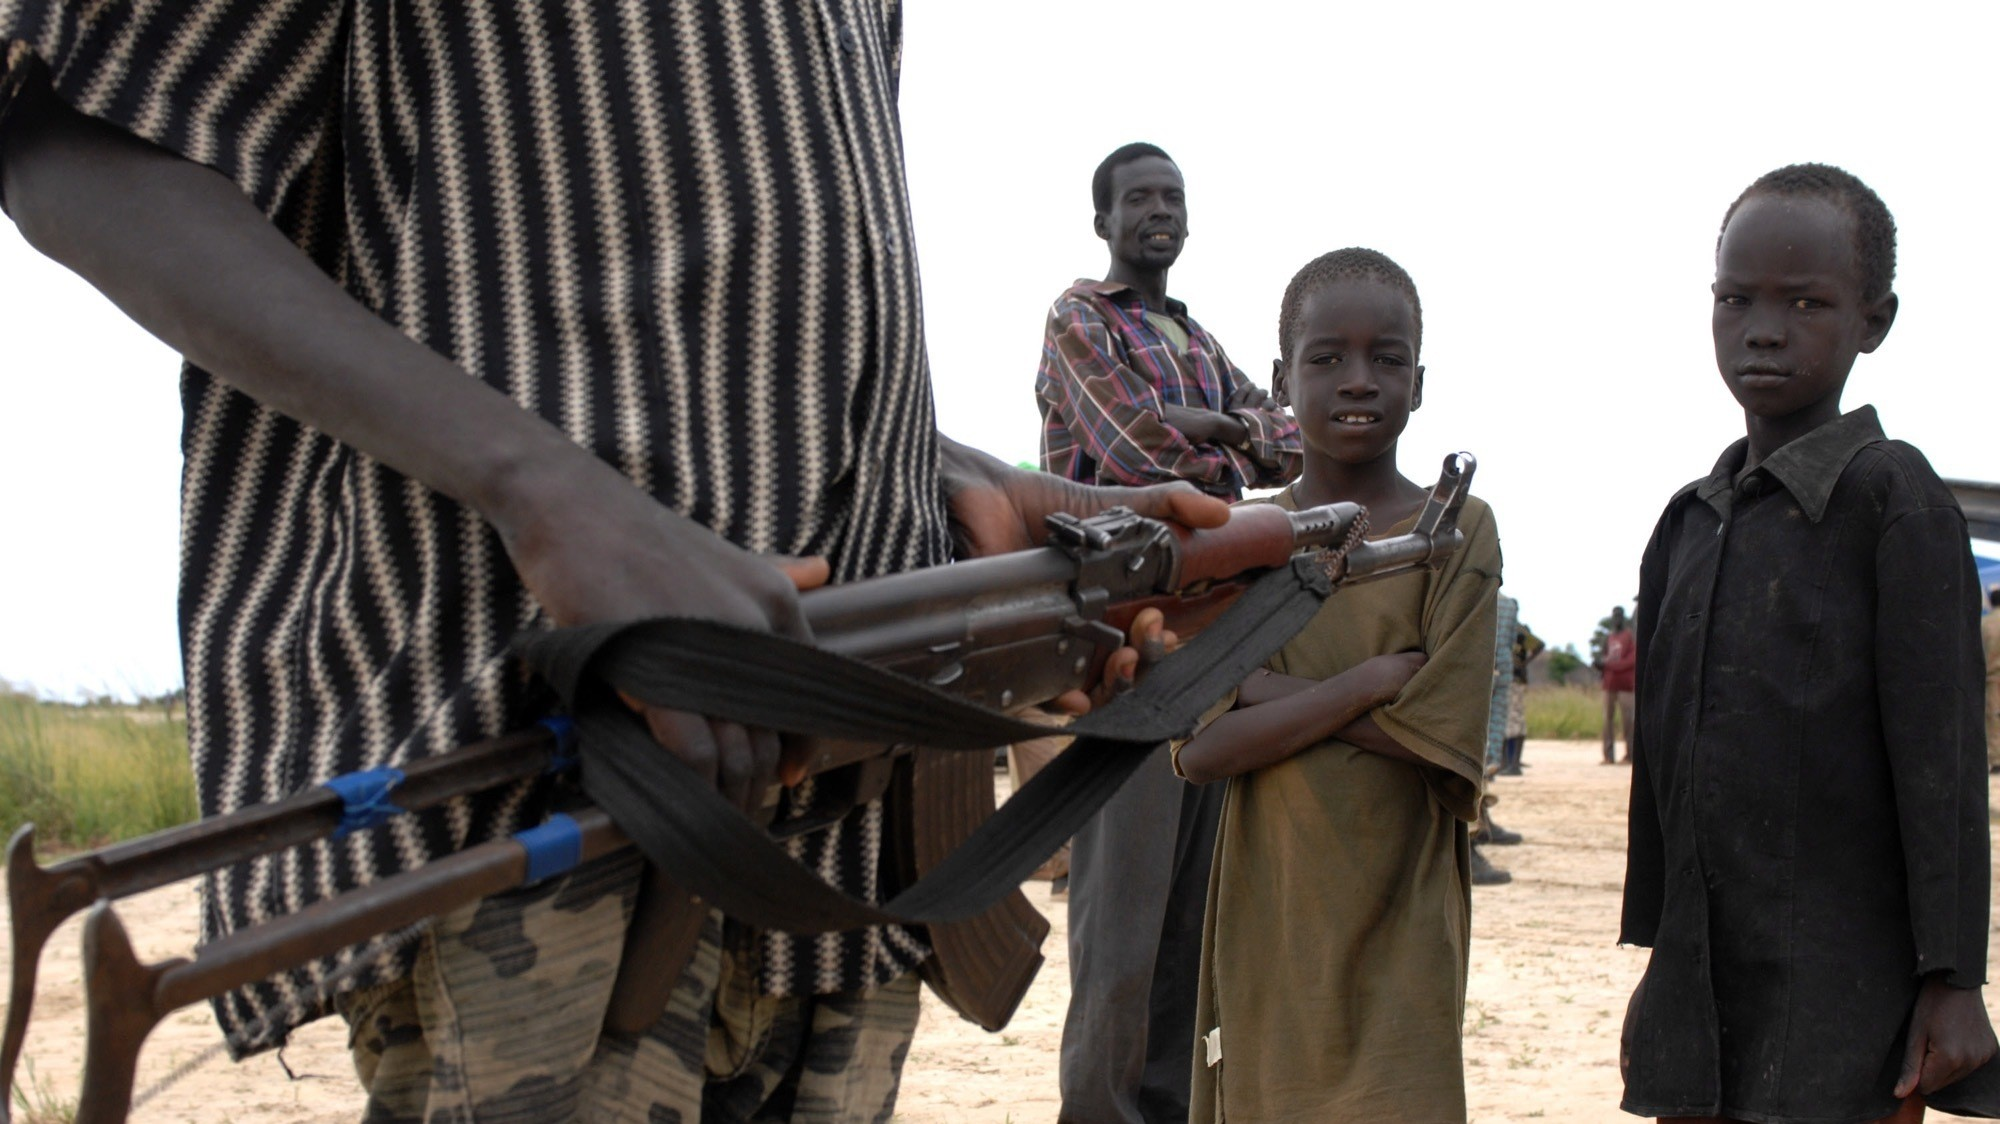 South Sudanese Gunmen Killed 140 People and Abducted 39 Children, Ethiopian Officials Say